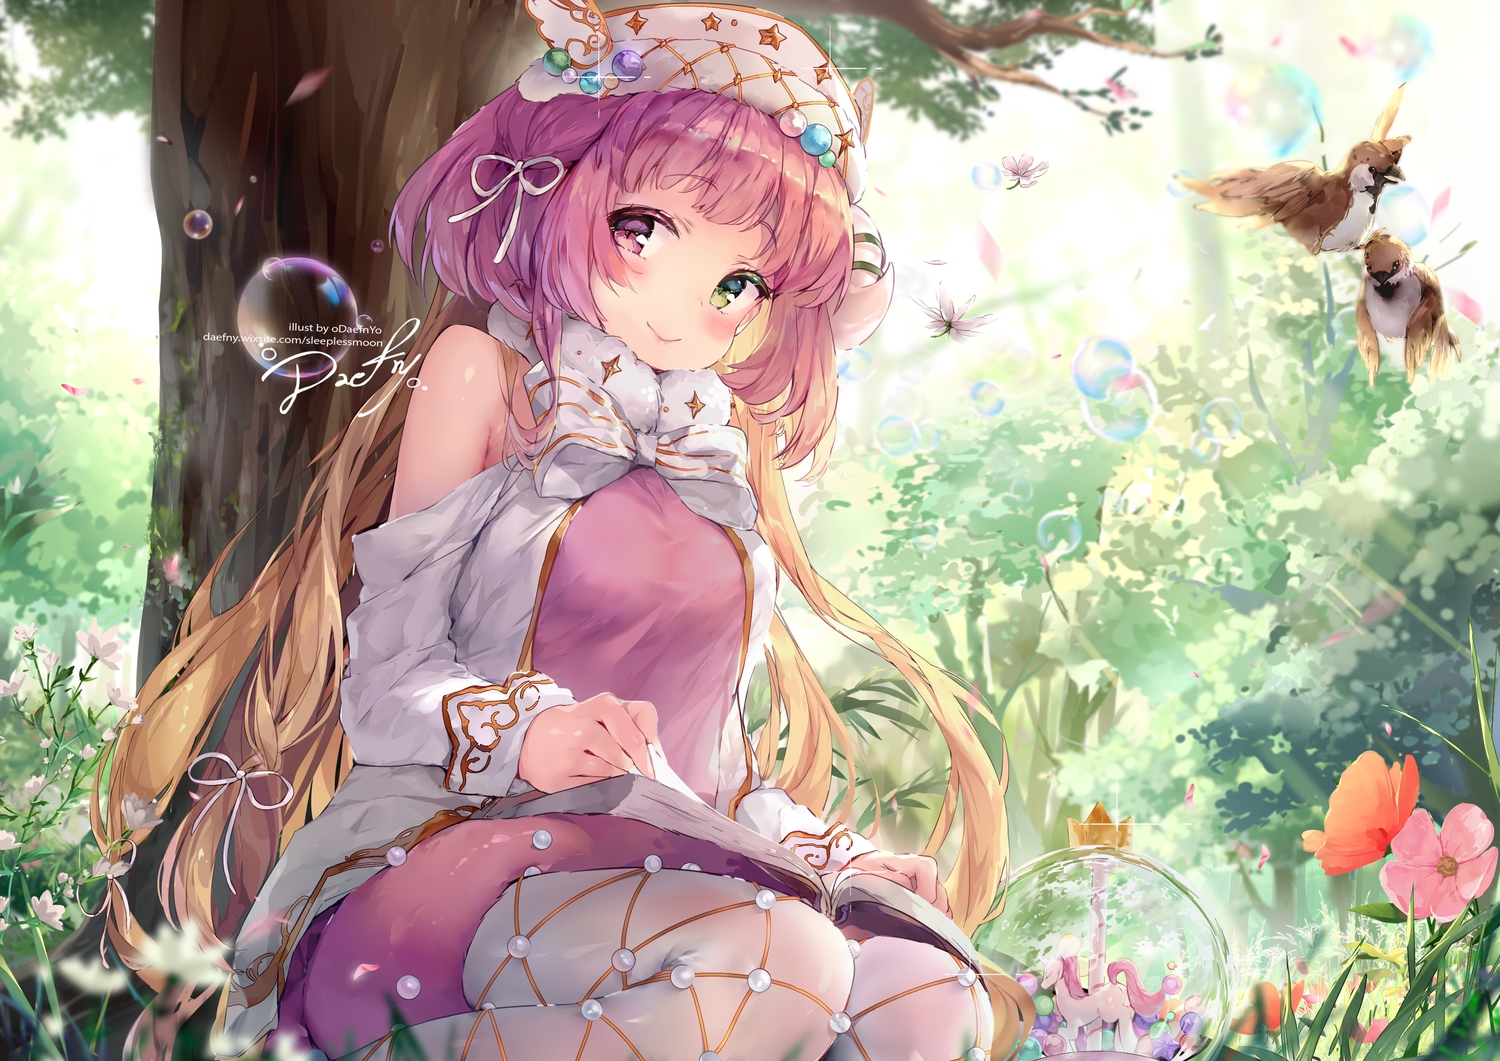 animal bicolored_eyes bird blush book bow bubbles daefny flowers grass long_hair purple_hair signed tree watermark